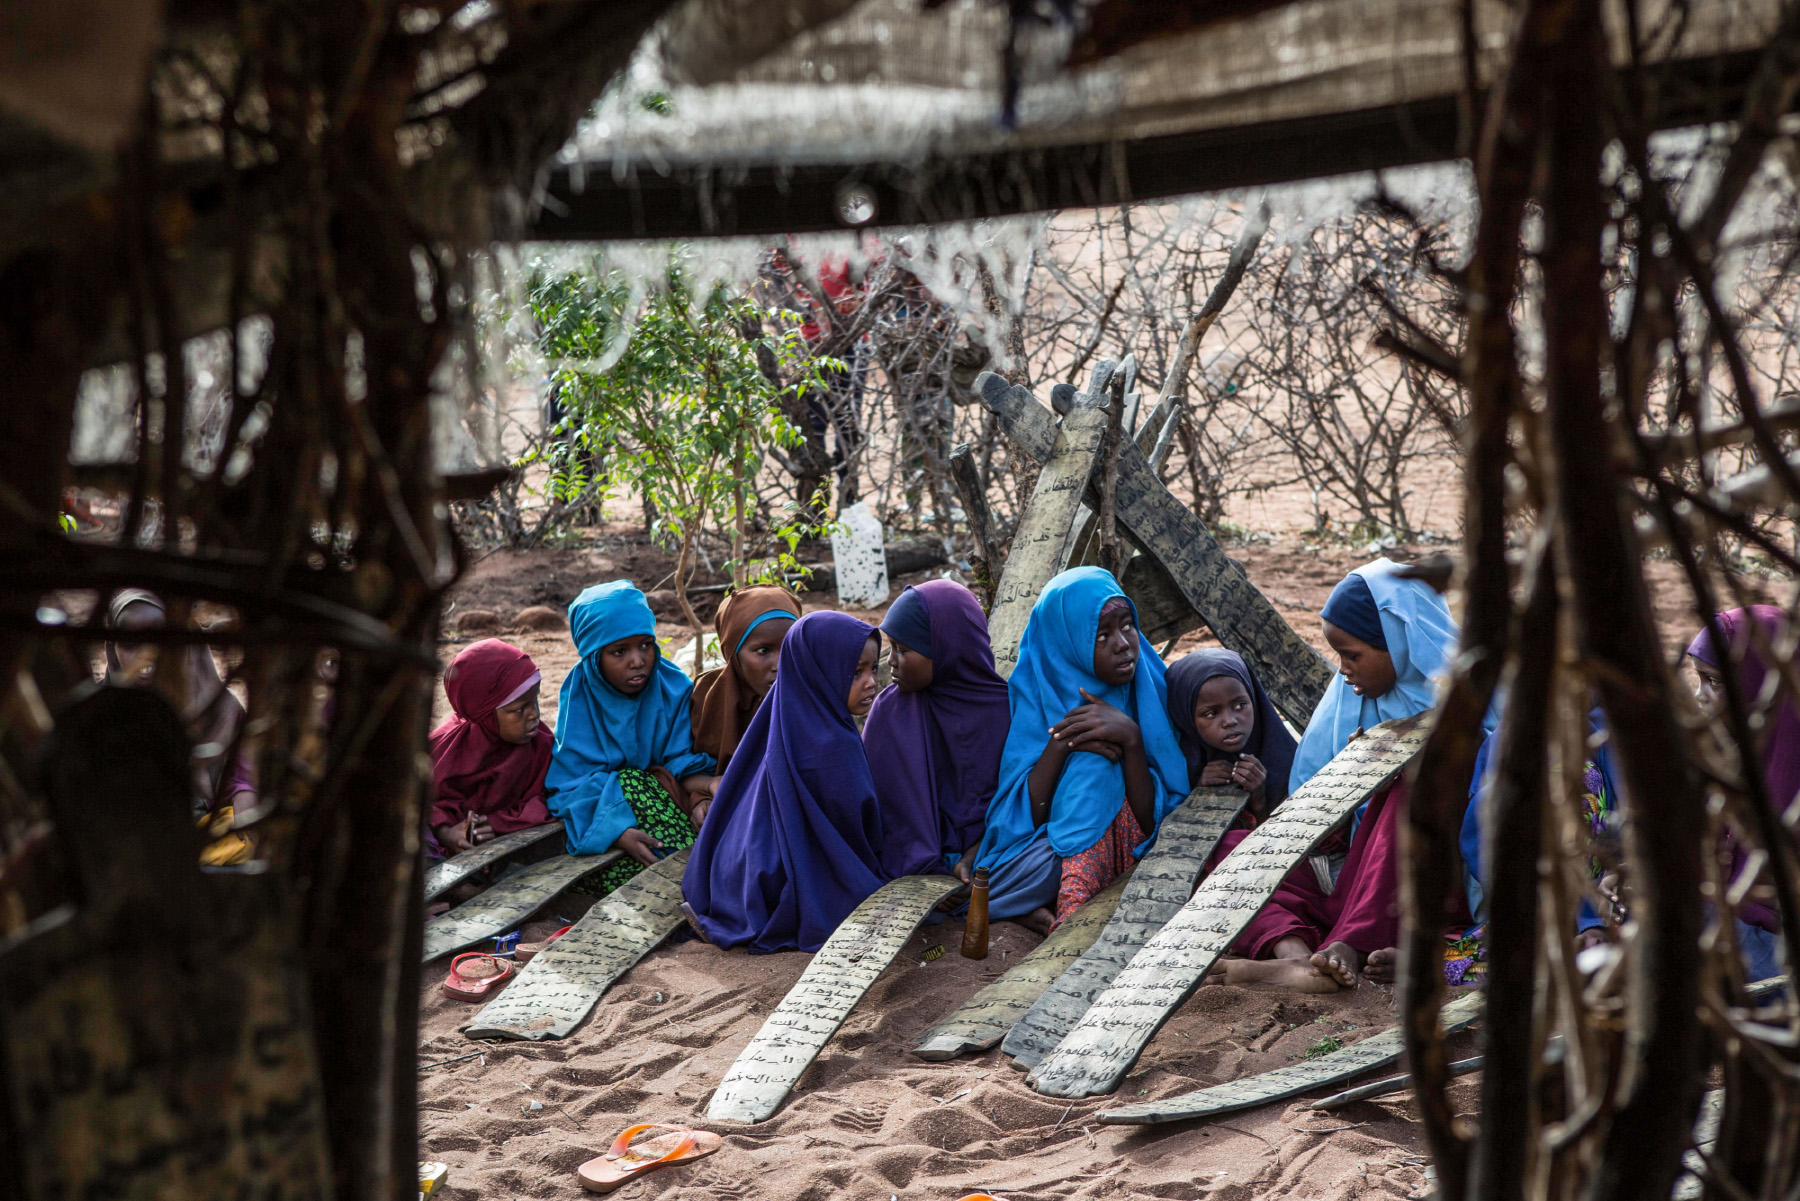 Somali children attend morning madrassa, or Islamic religious classes, in Dadaab refugee camp. They are among hundreds of thousands of Somali refugees who fled violence and starvation, made worse by climate change. Click on the photo to see the story. (Photo by Nichole Sobecki/GroundTruth)